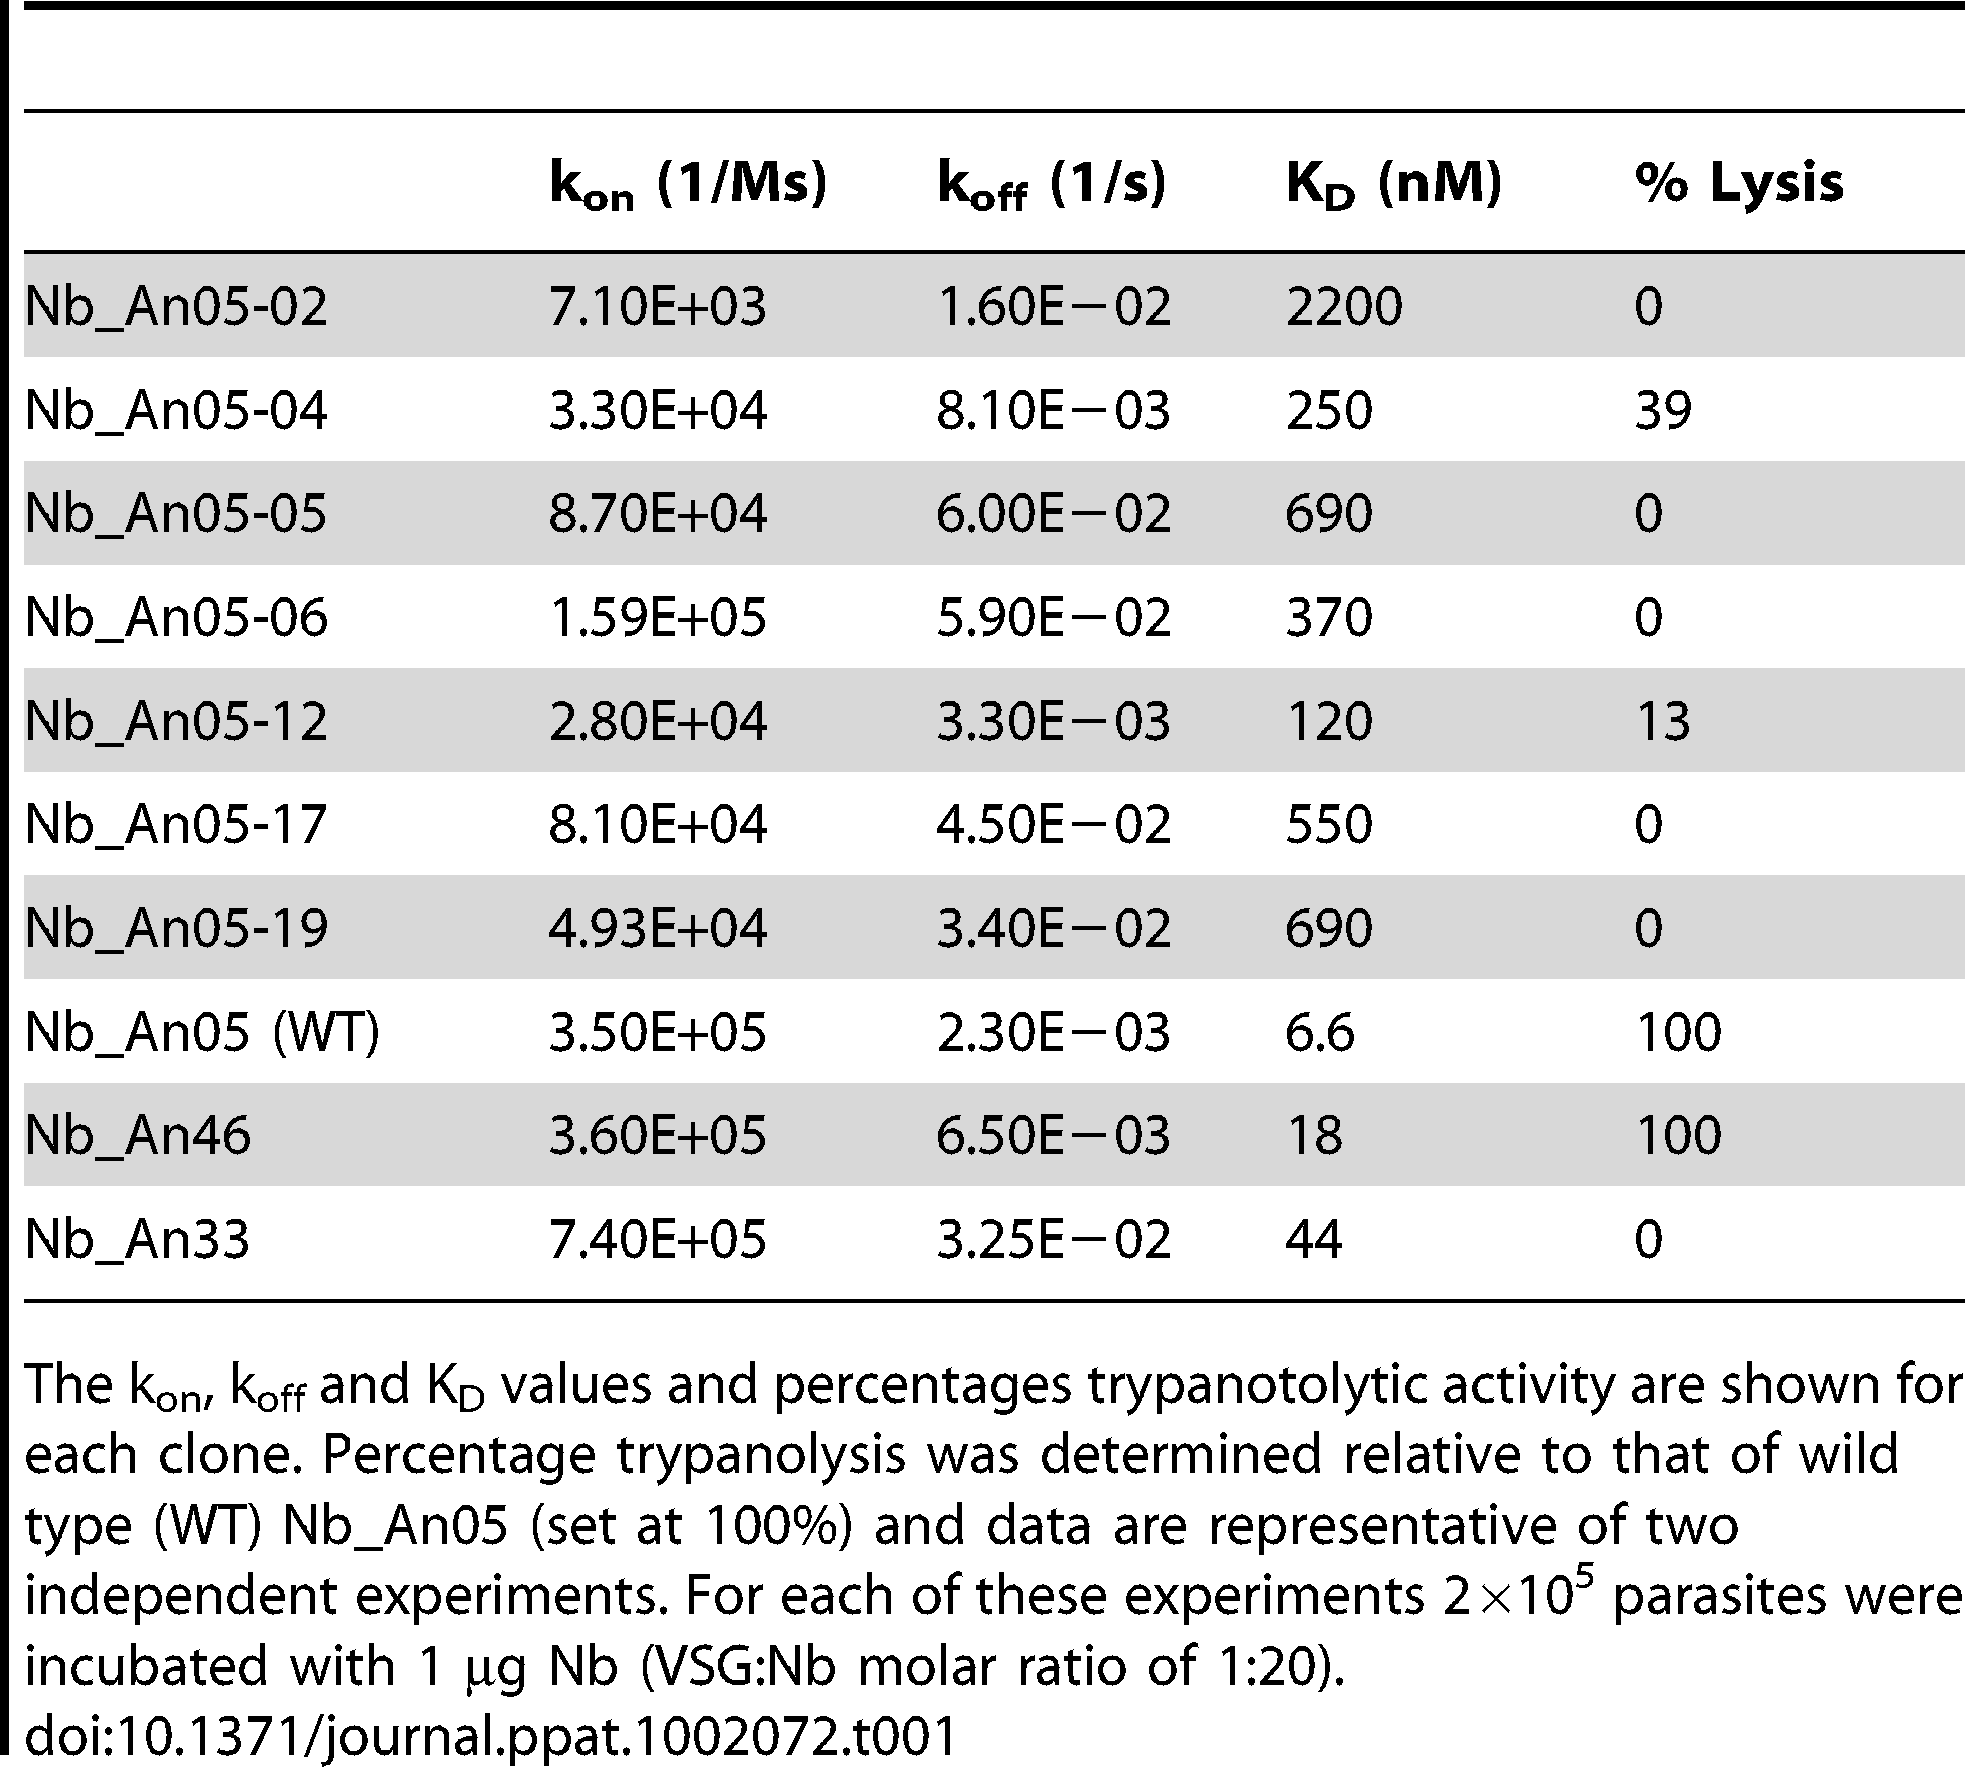 Antigen-binding kinetic parameters of the different Nb_An05 mutants as well as the wild type Nb_An05, Nb_An46 and Nb_An33 were determined using surface plasmon resonance (CM5/VSG-chip).